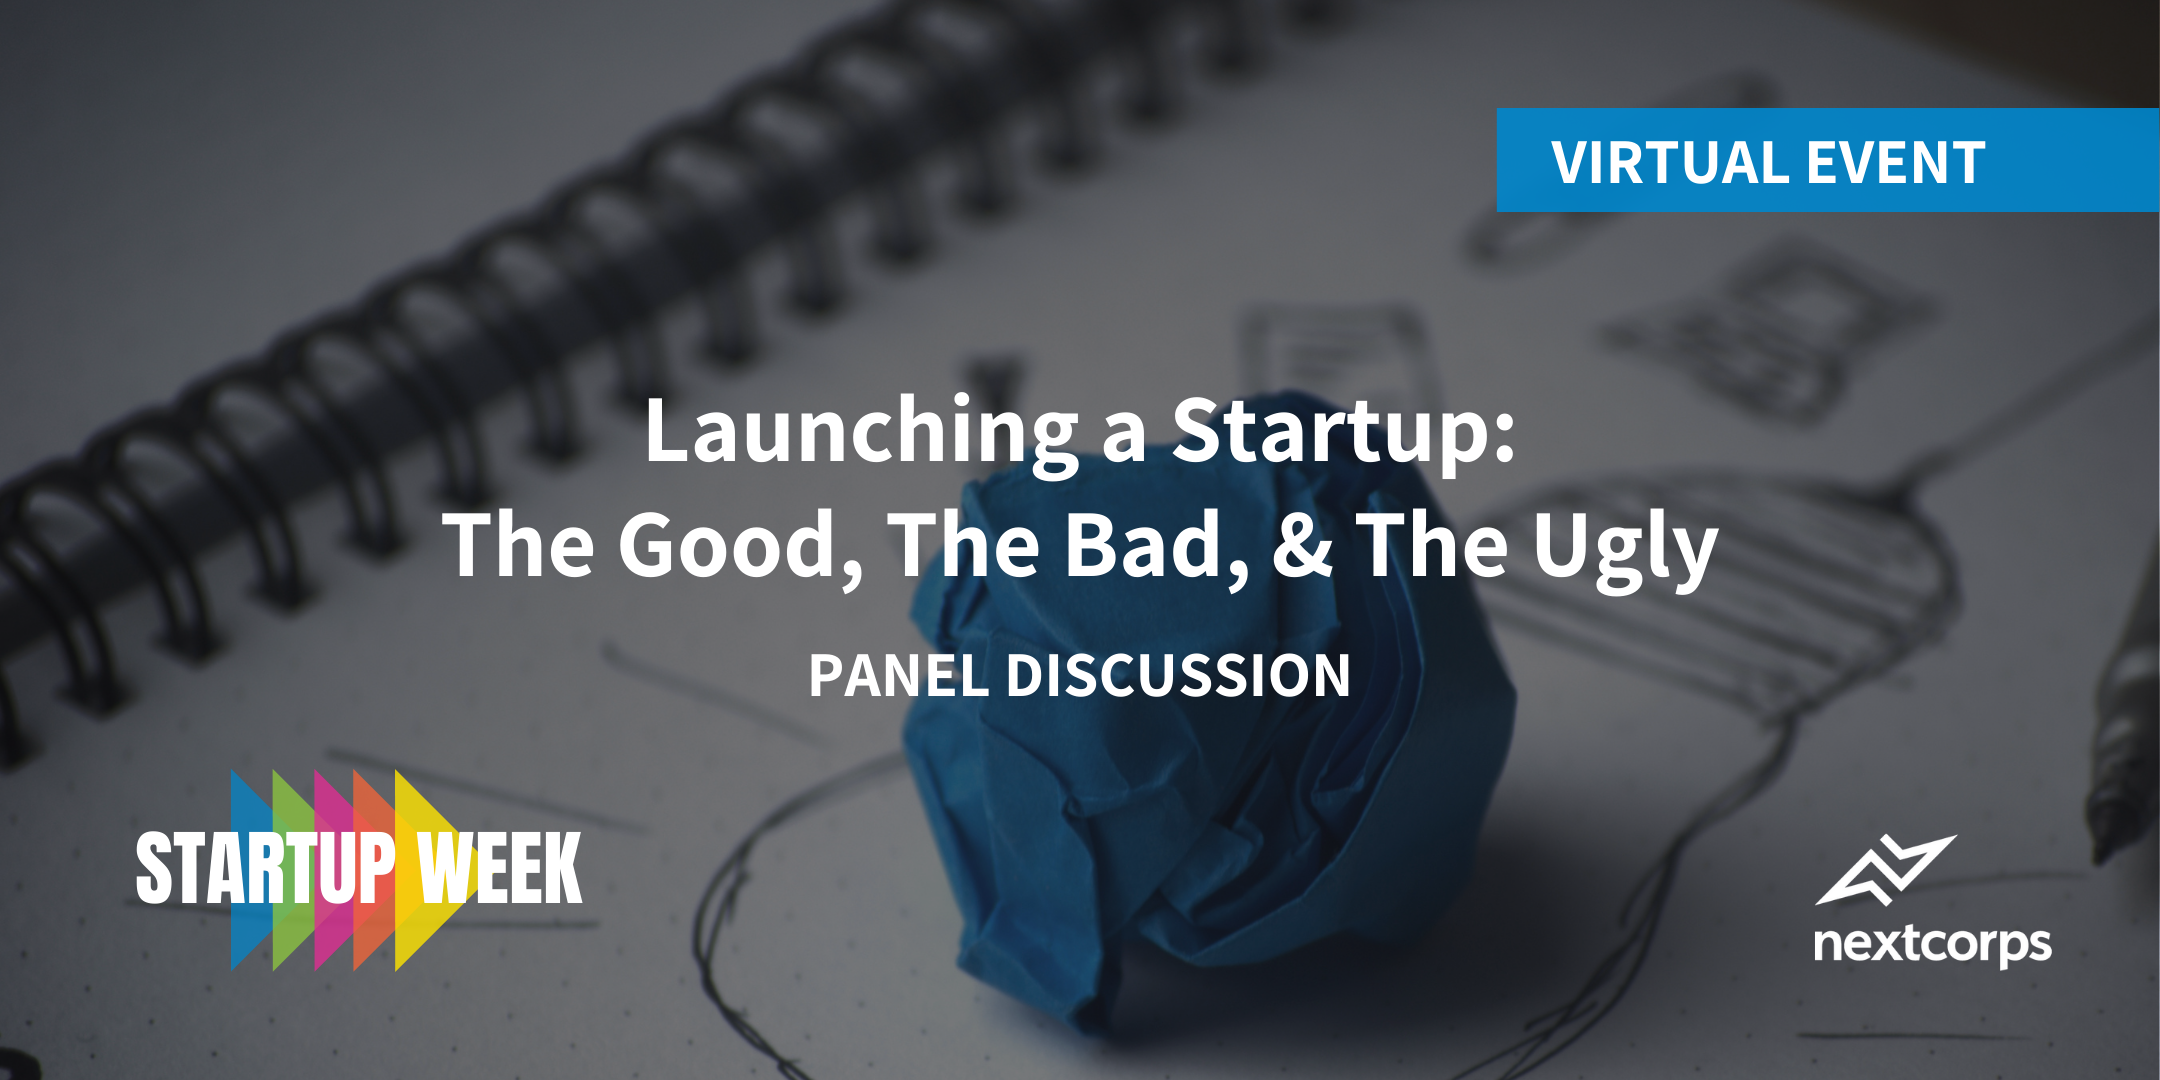 Launching a Startup: The Good, The Bad, & The Ugly